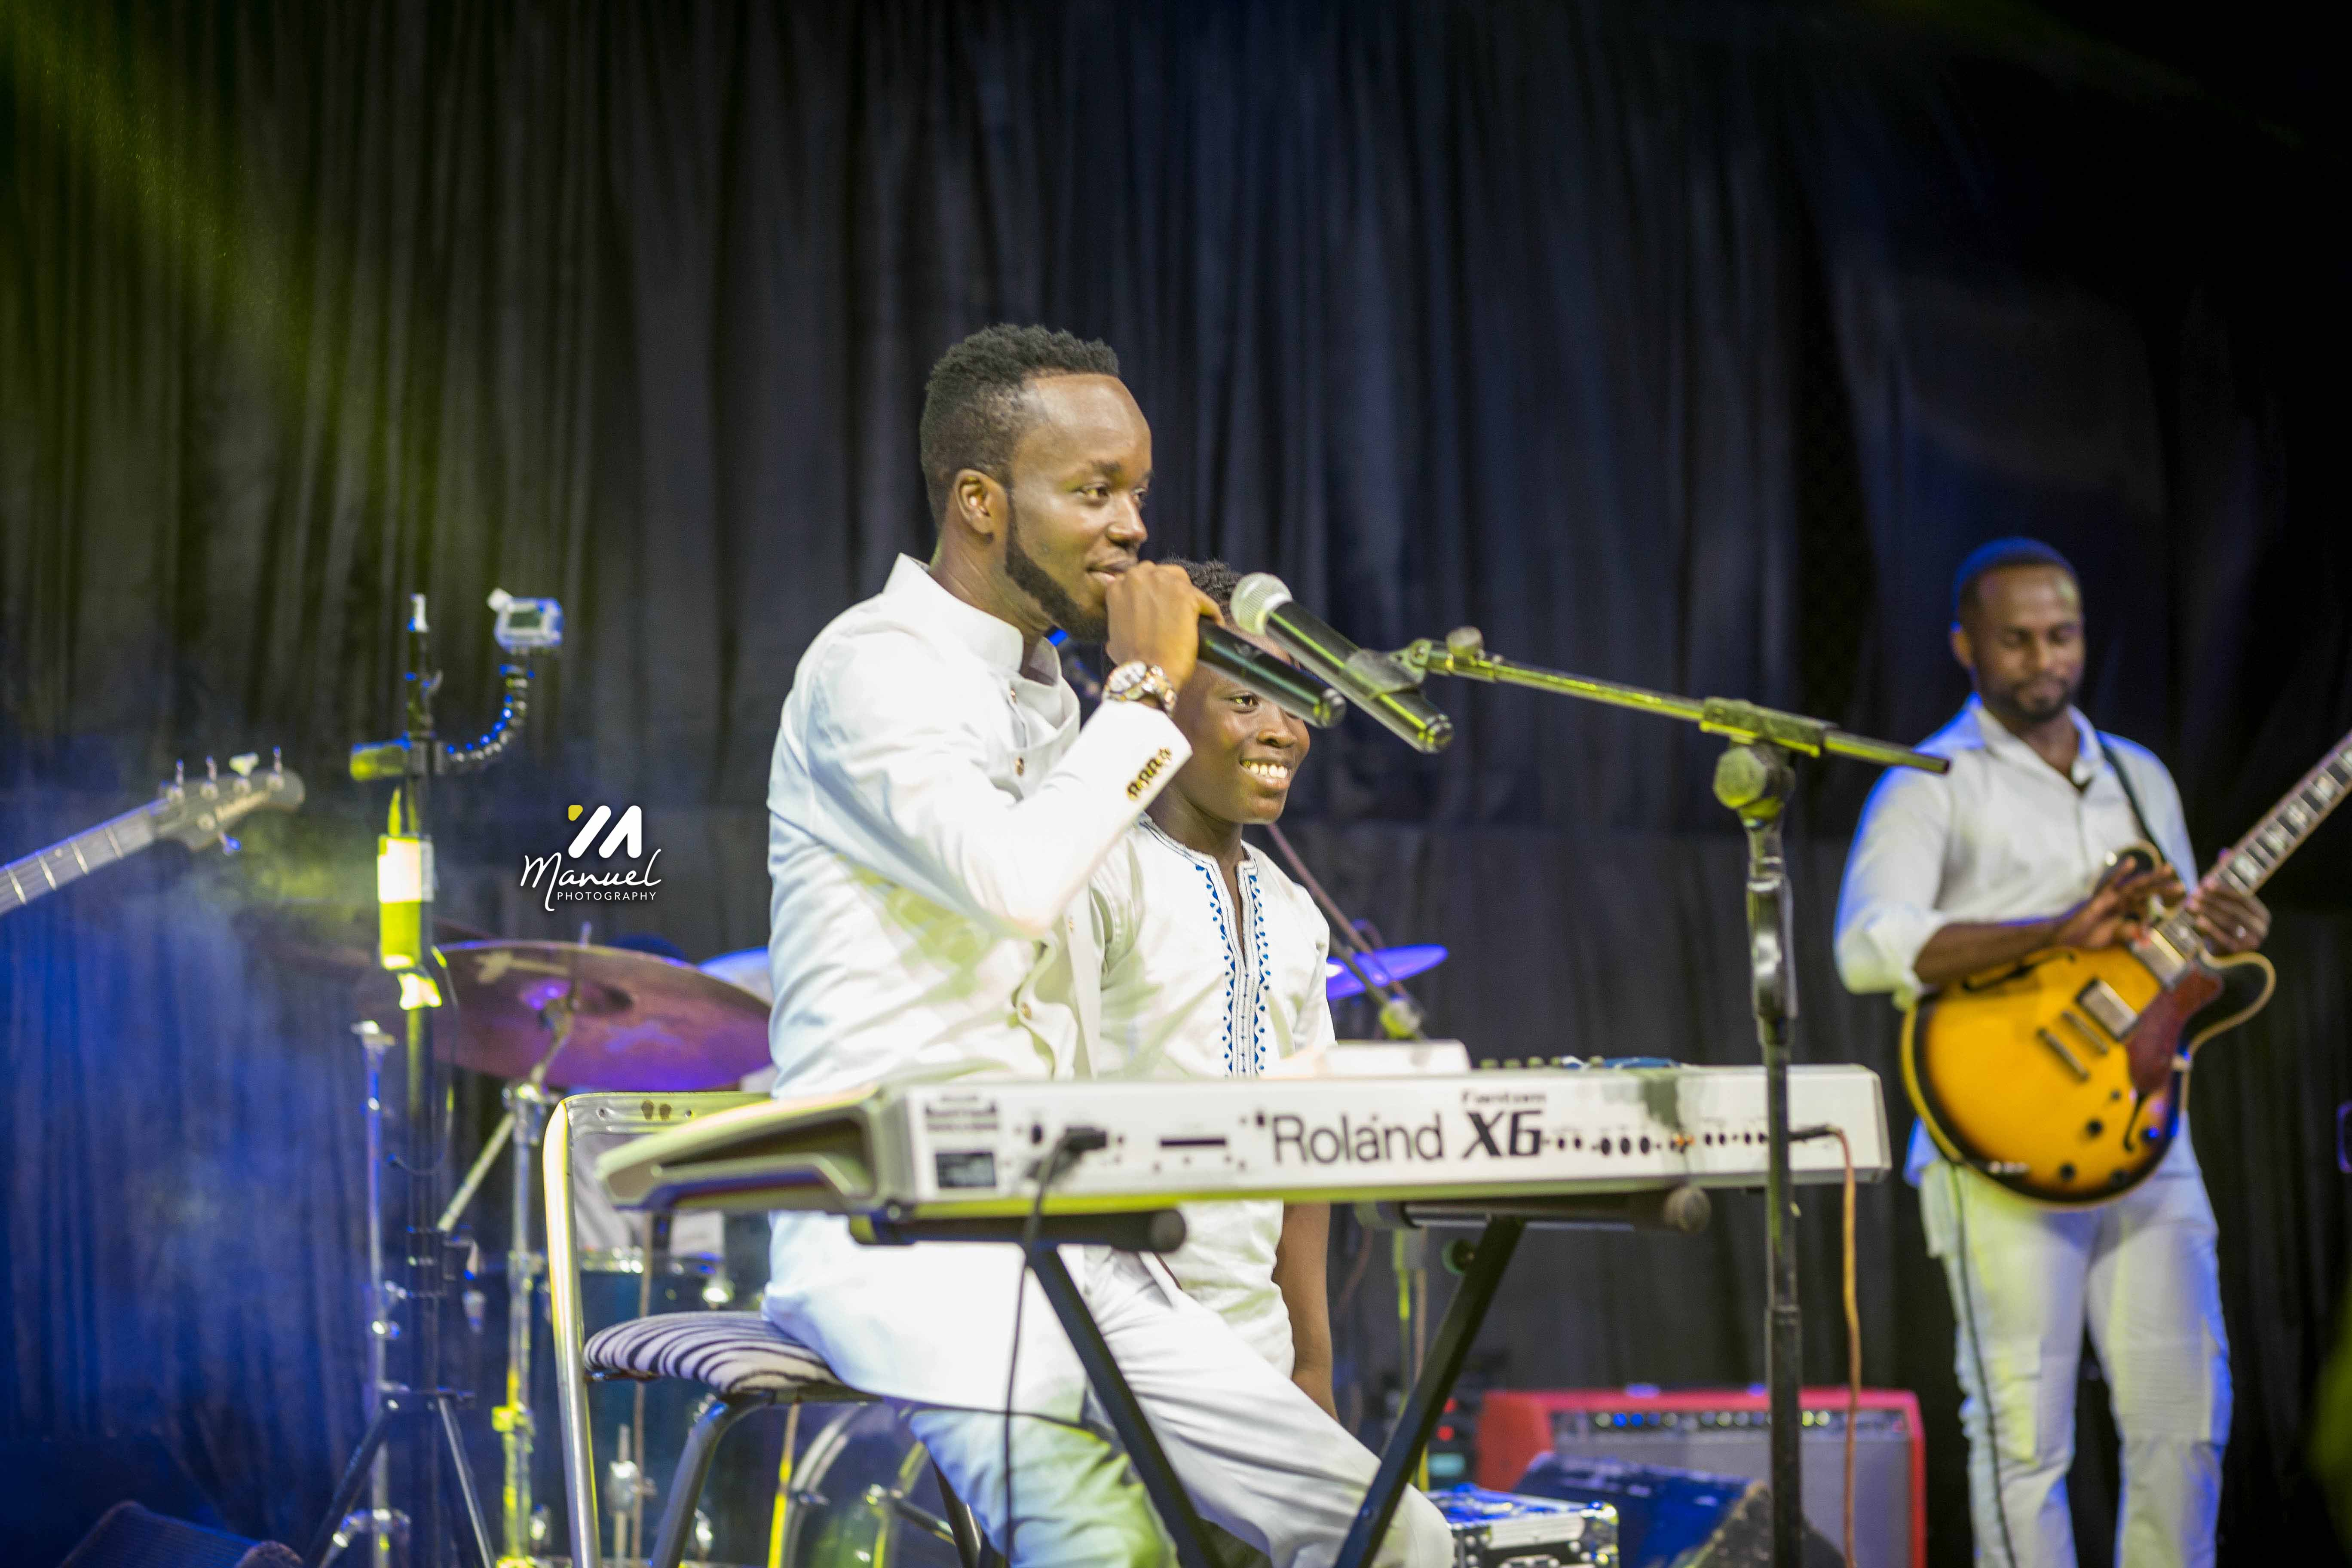 EXCLUSIVE PICTURES OF AKWABOA'S SHADES OF LOVE 2019 CONCERT.